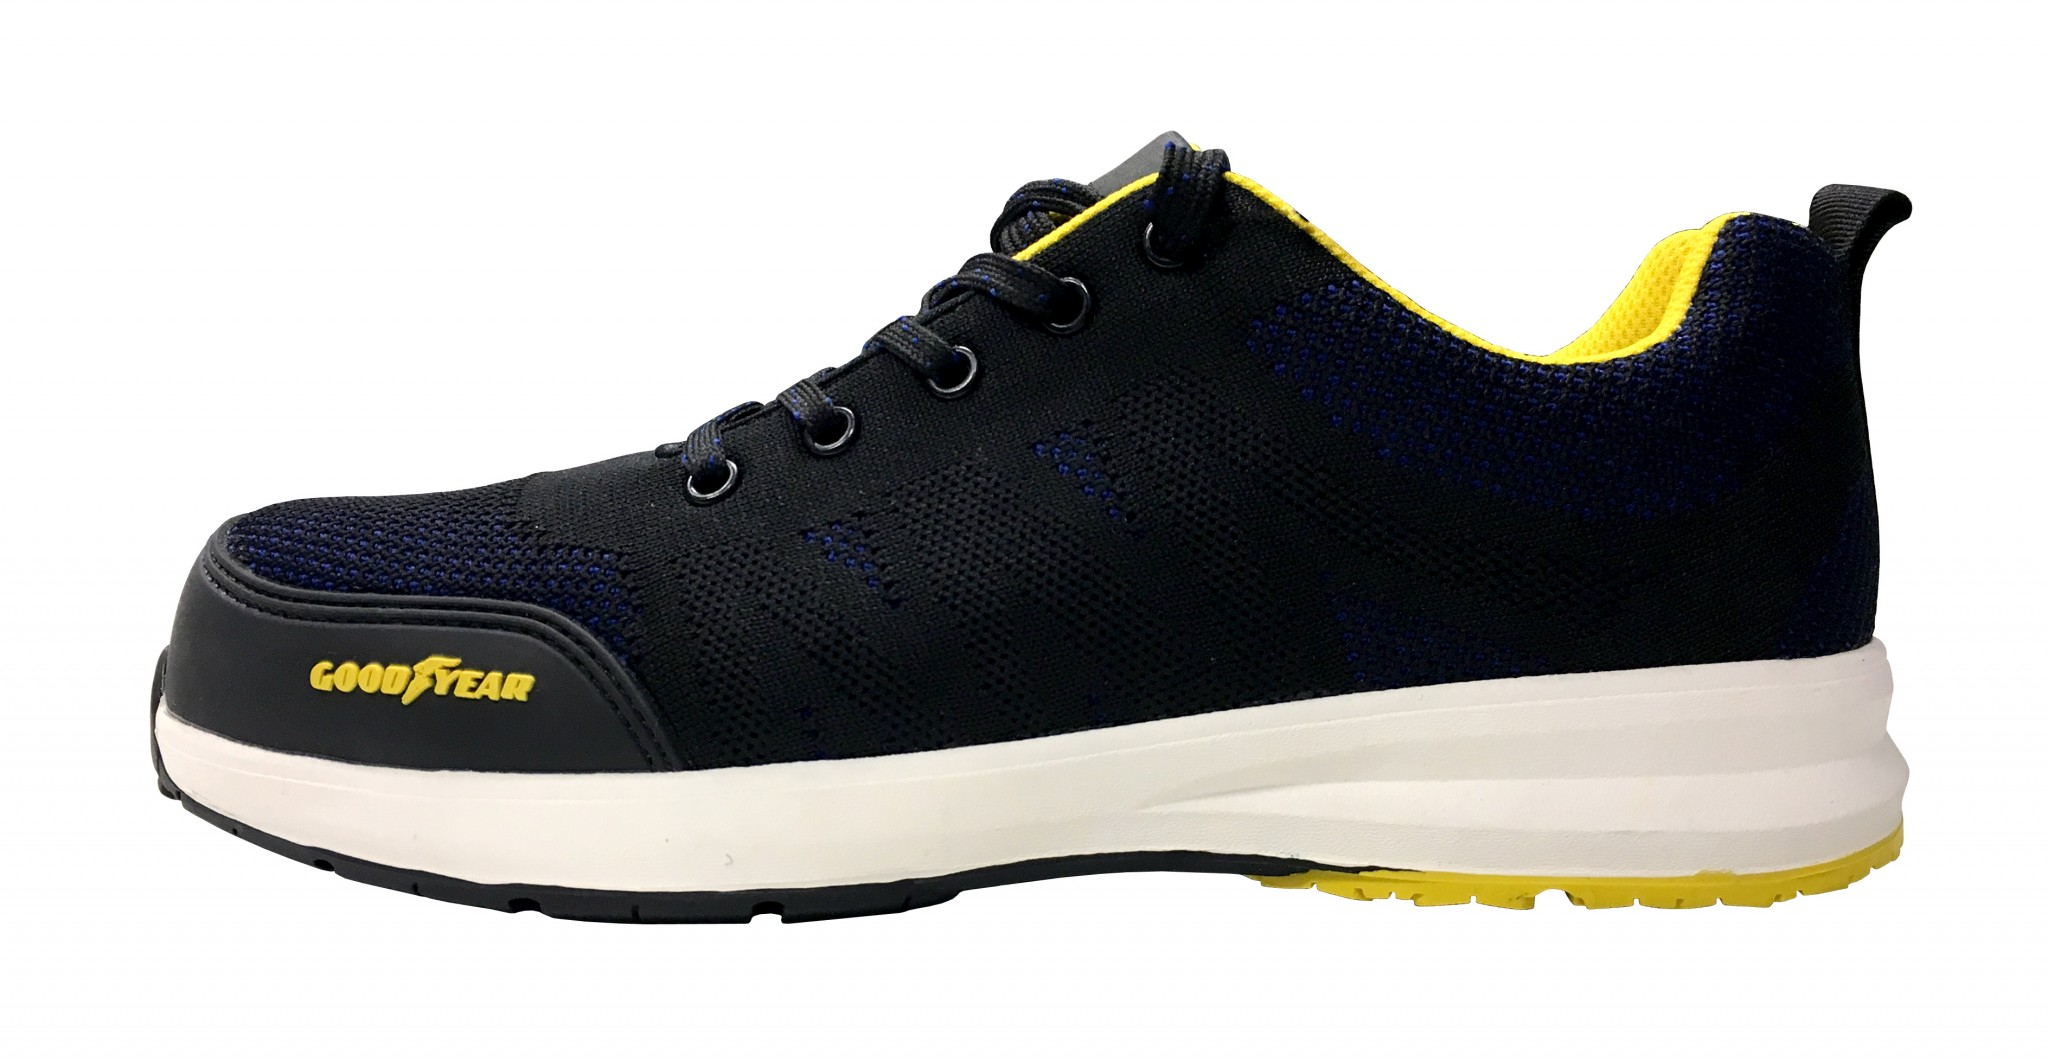 goodyear sneakers history cc8301